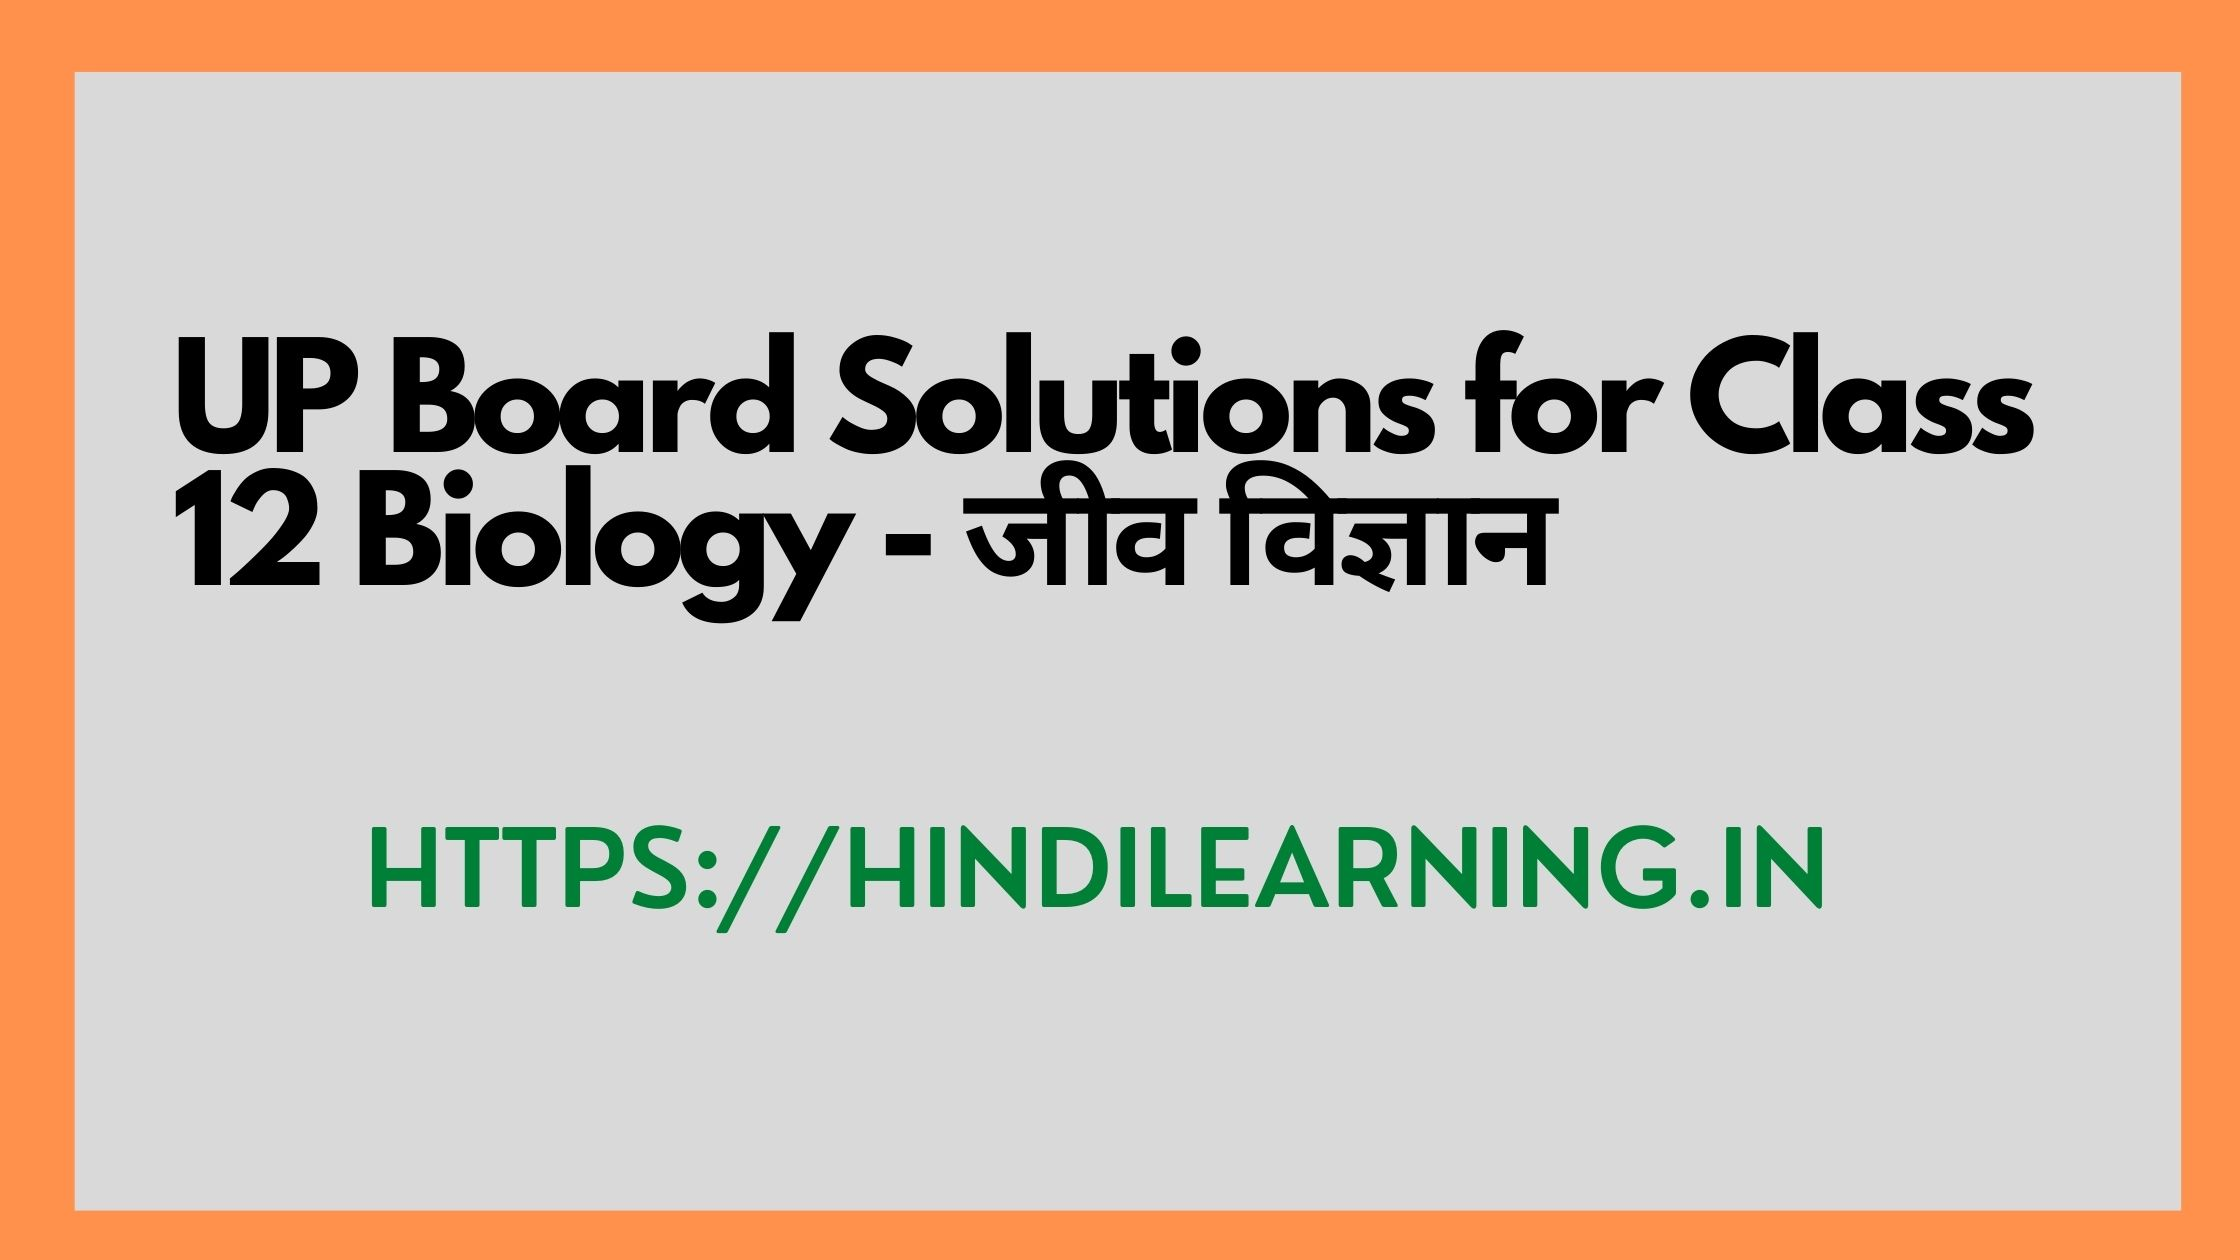 UP Board Solutions for Biology जीव विज्ञान